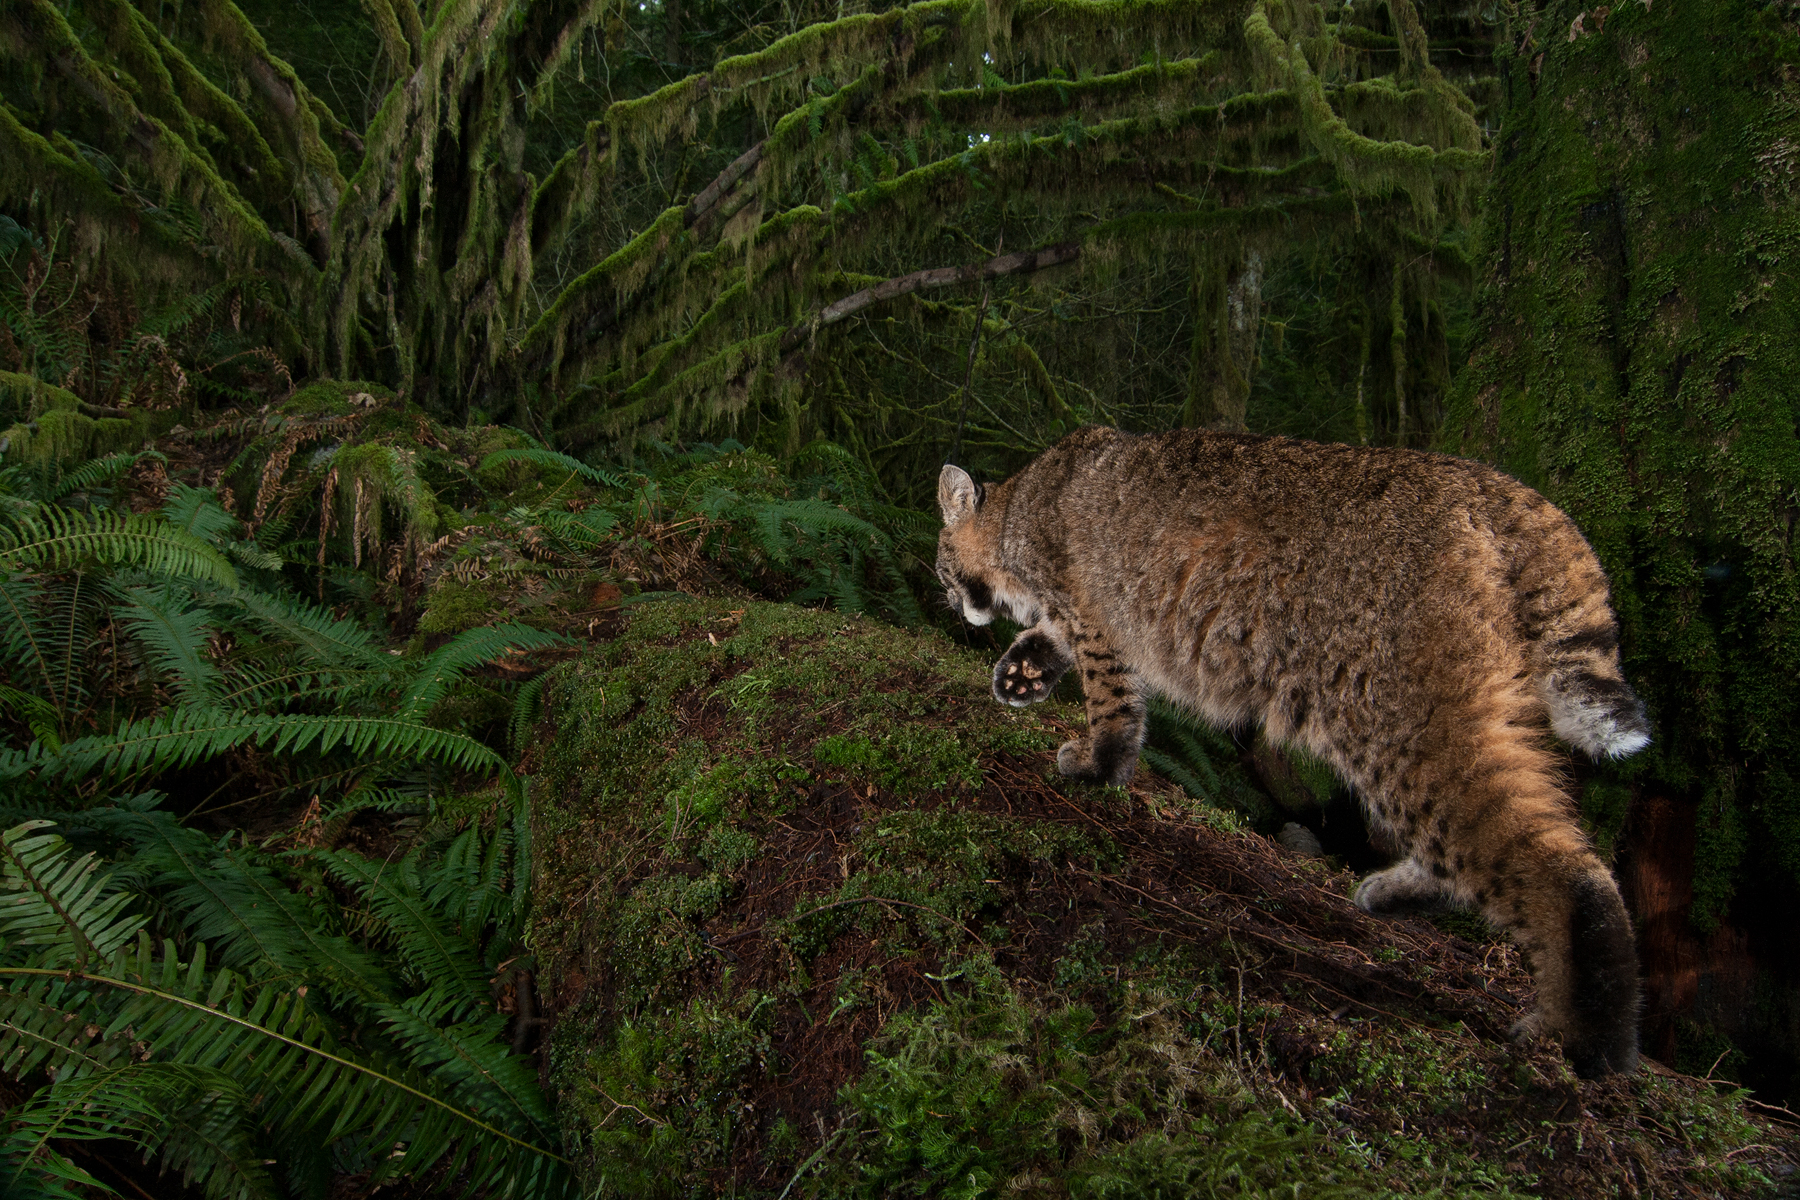 This Bobcat took this image of itself by walking through the infrared beam of my remote camera trap. Taken in Maple Ridge, B.C, Canada. Subject attracted with raw deer bones.  Image ©Connor Stefanison